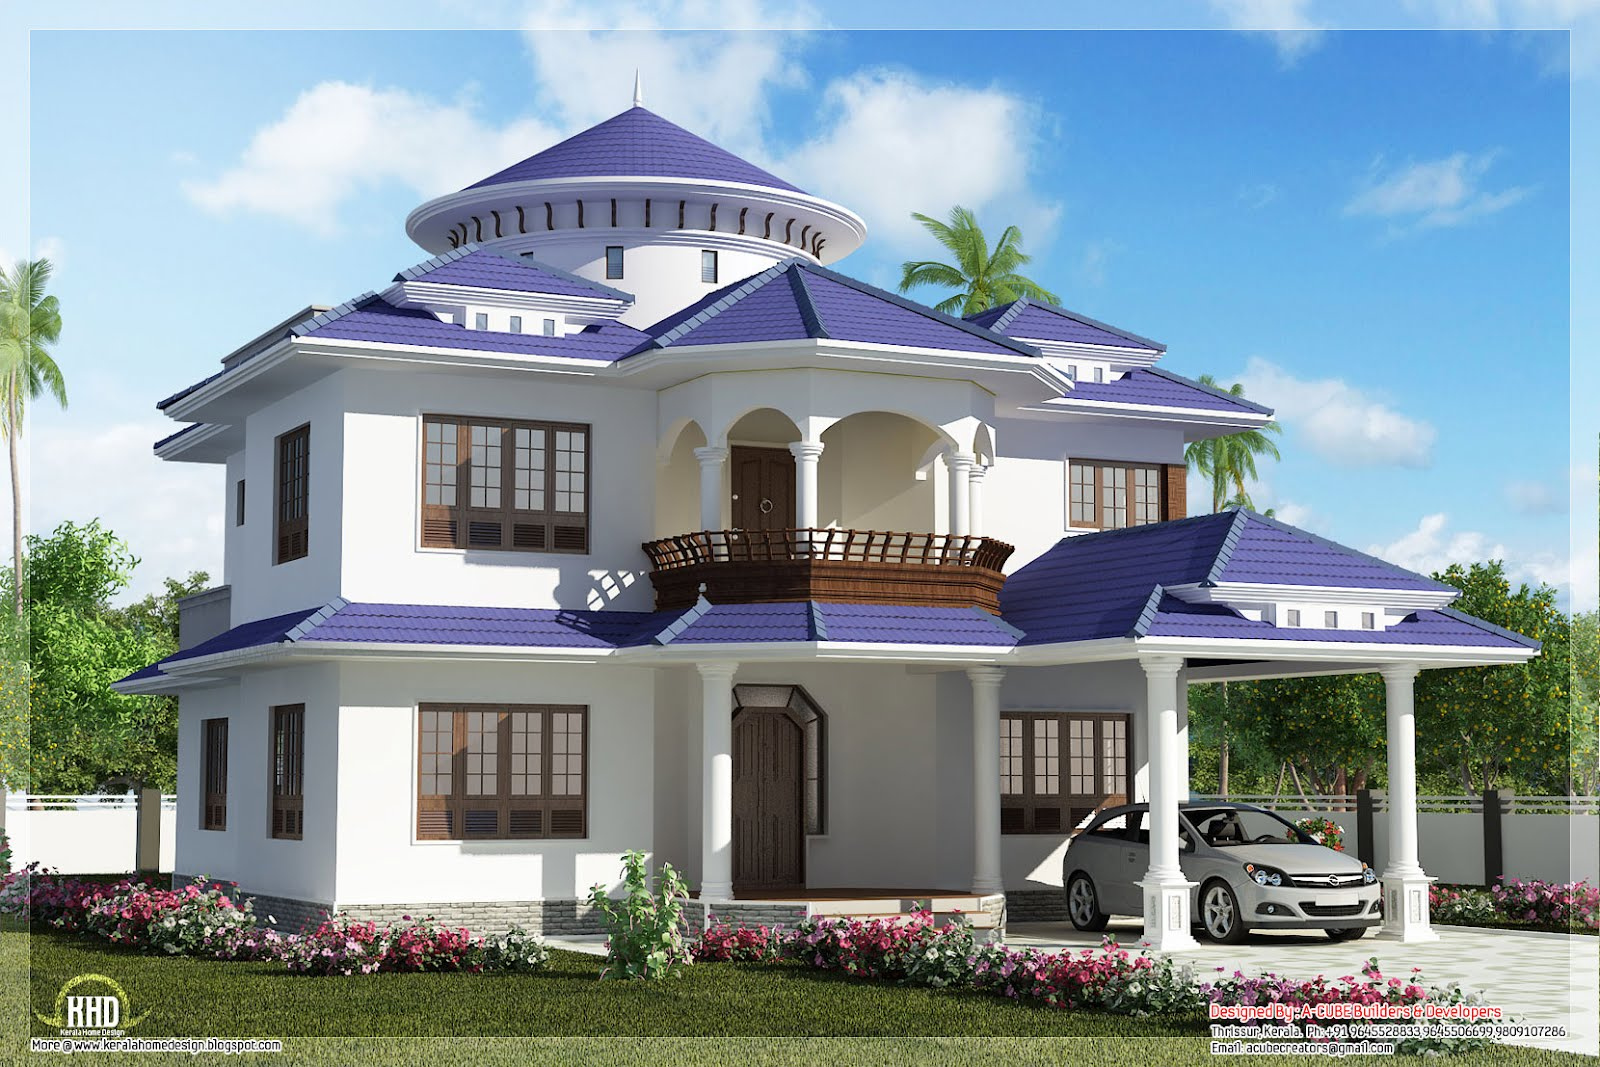 Beautiful dream home design in 2800 kerala home design and floor plans - Home design pic ...